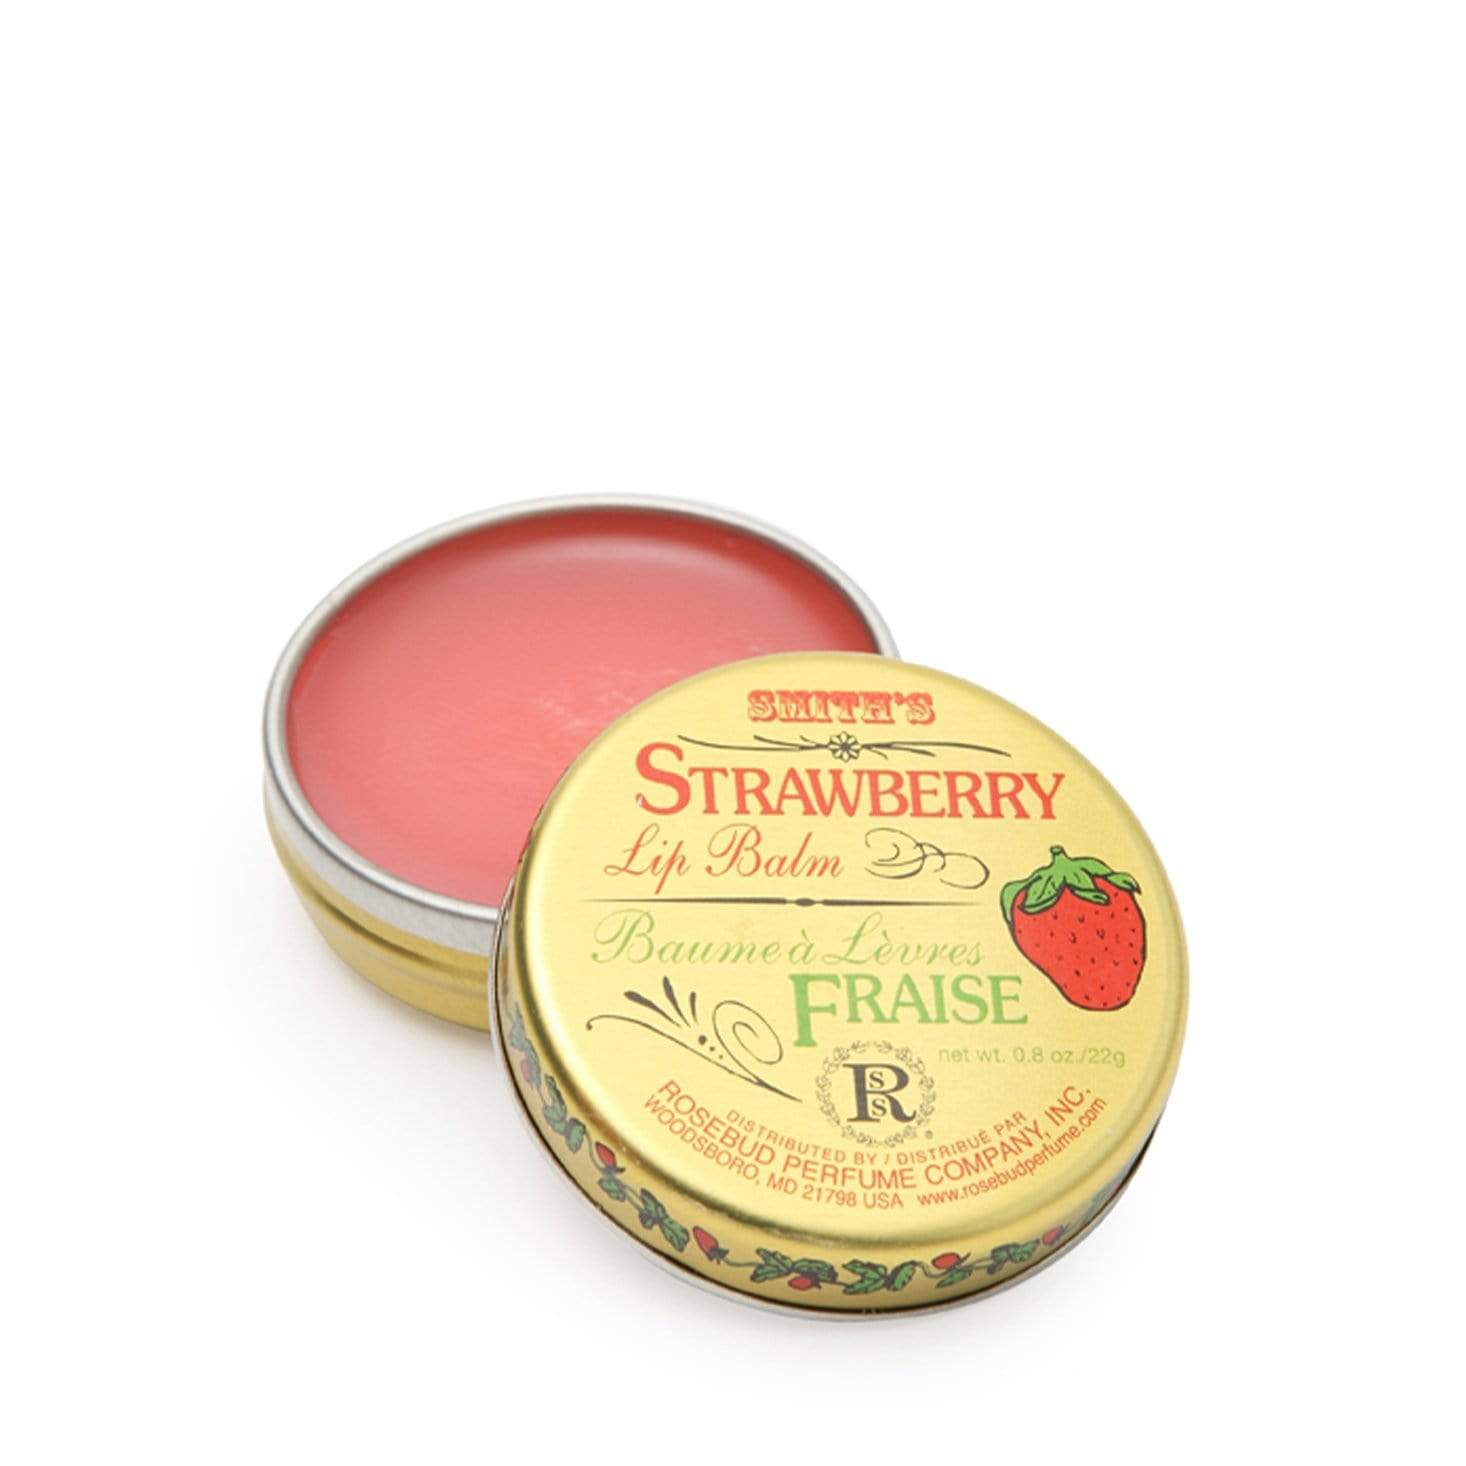 Smith's Rosebud Strawberry Lip Balm - Tin